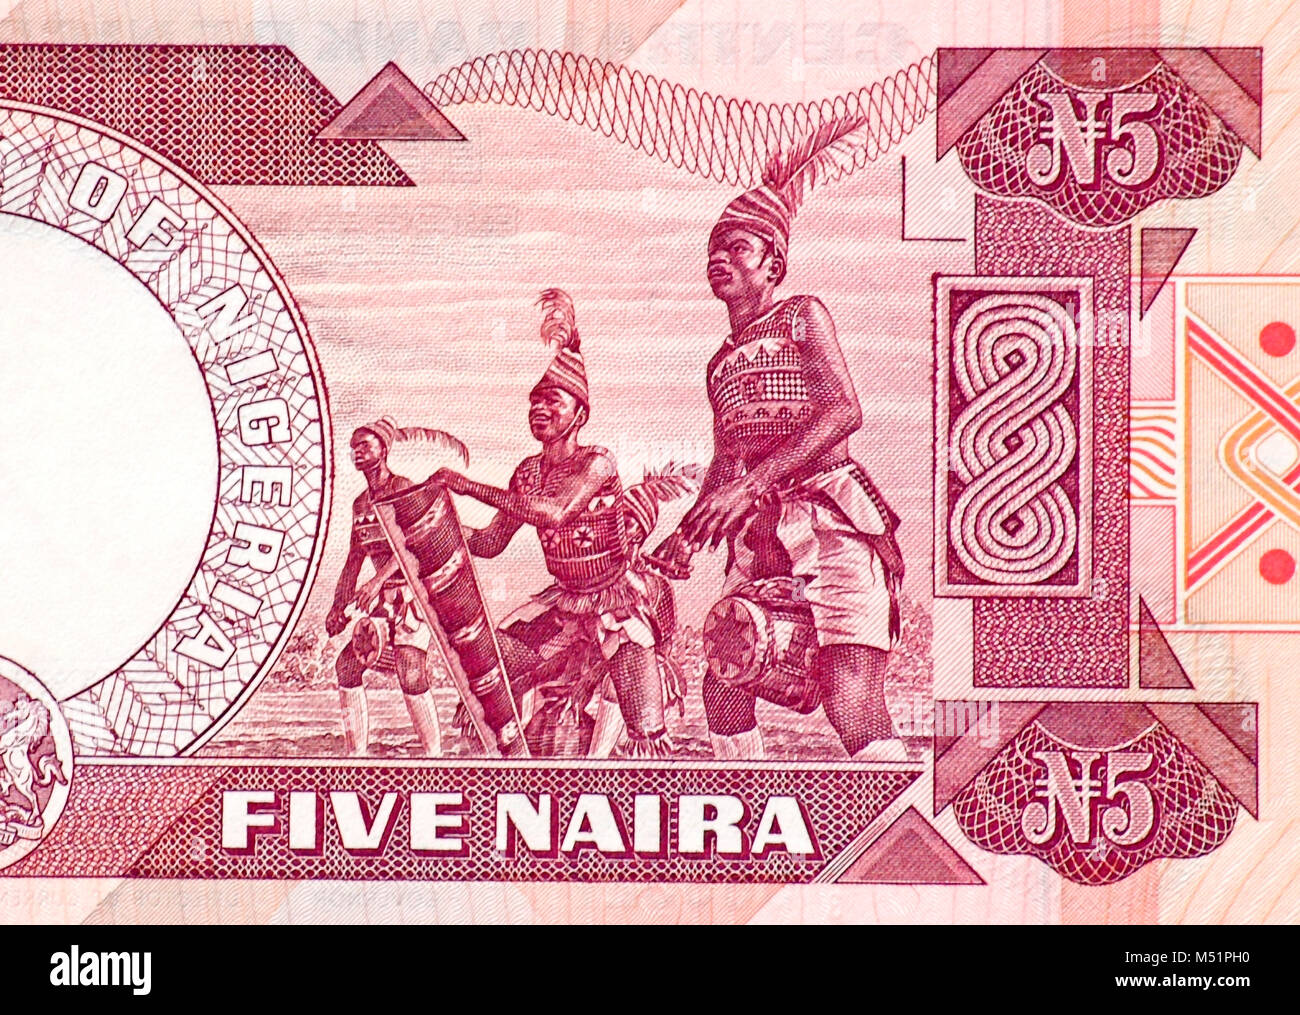 Nigeria Five 5 Naira Bank Note - Stock Image